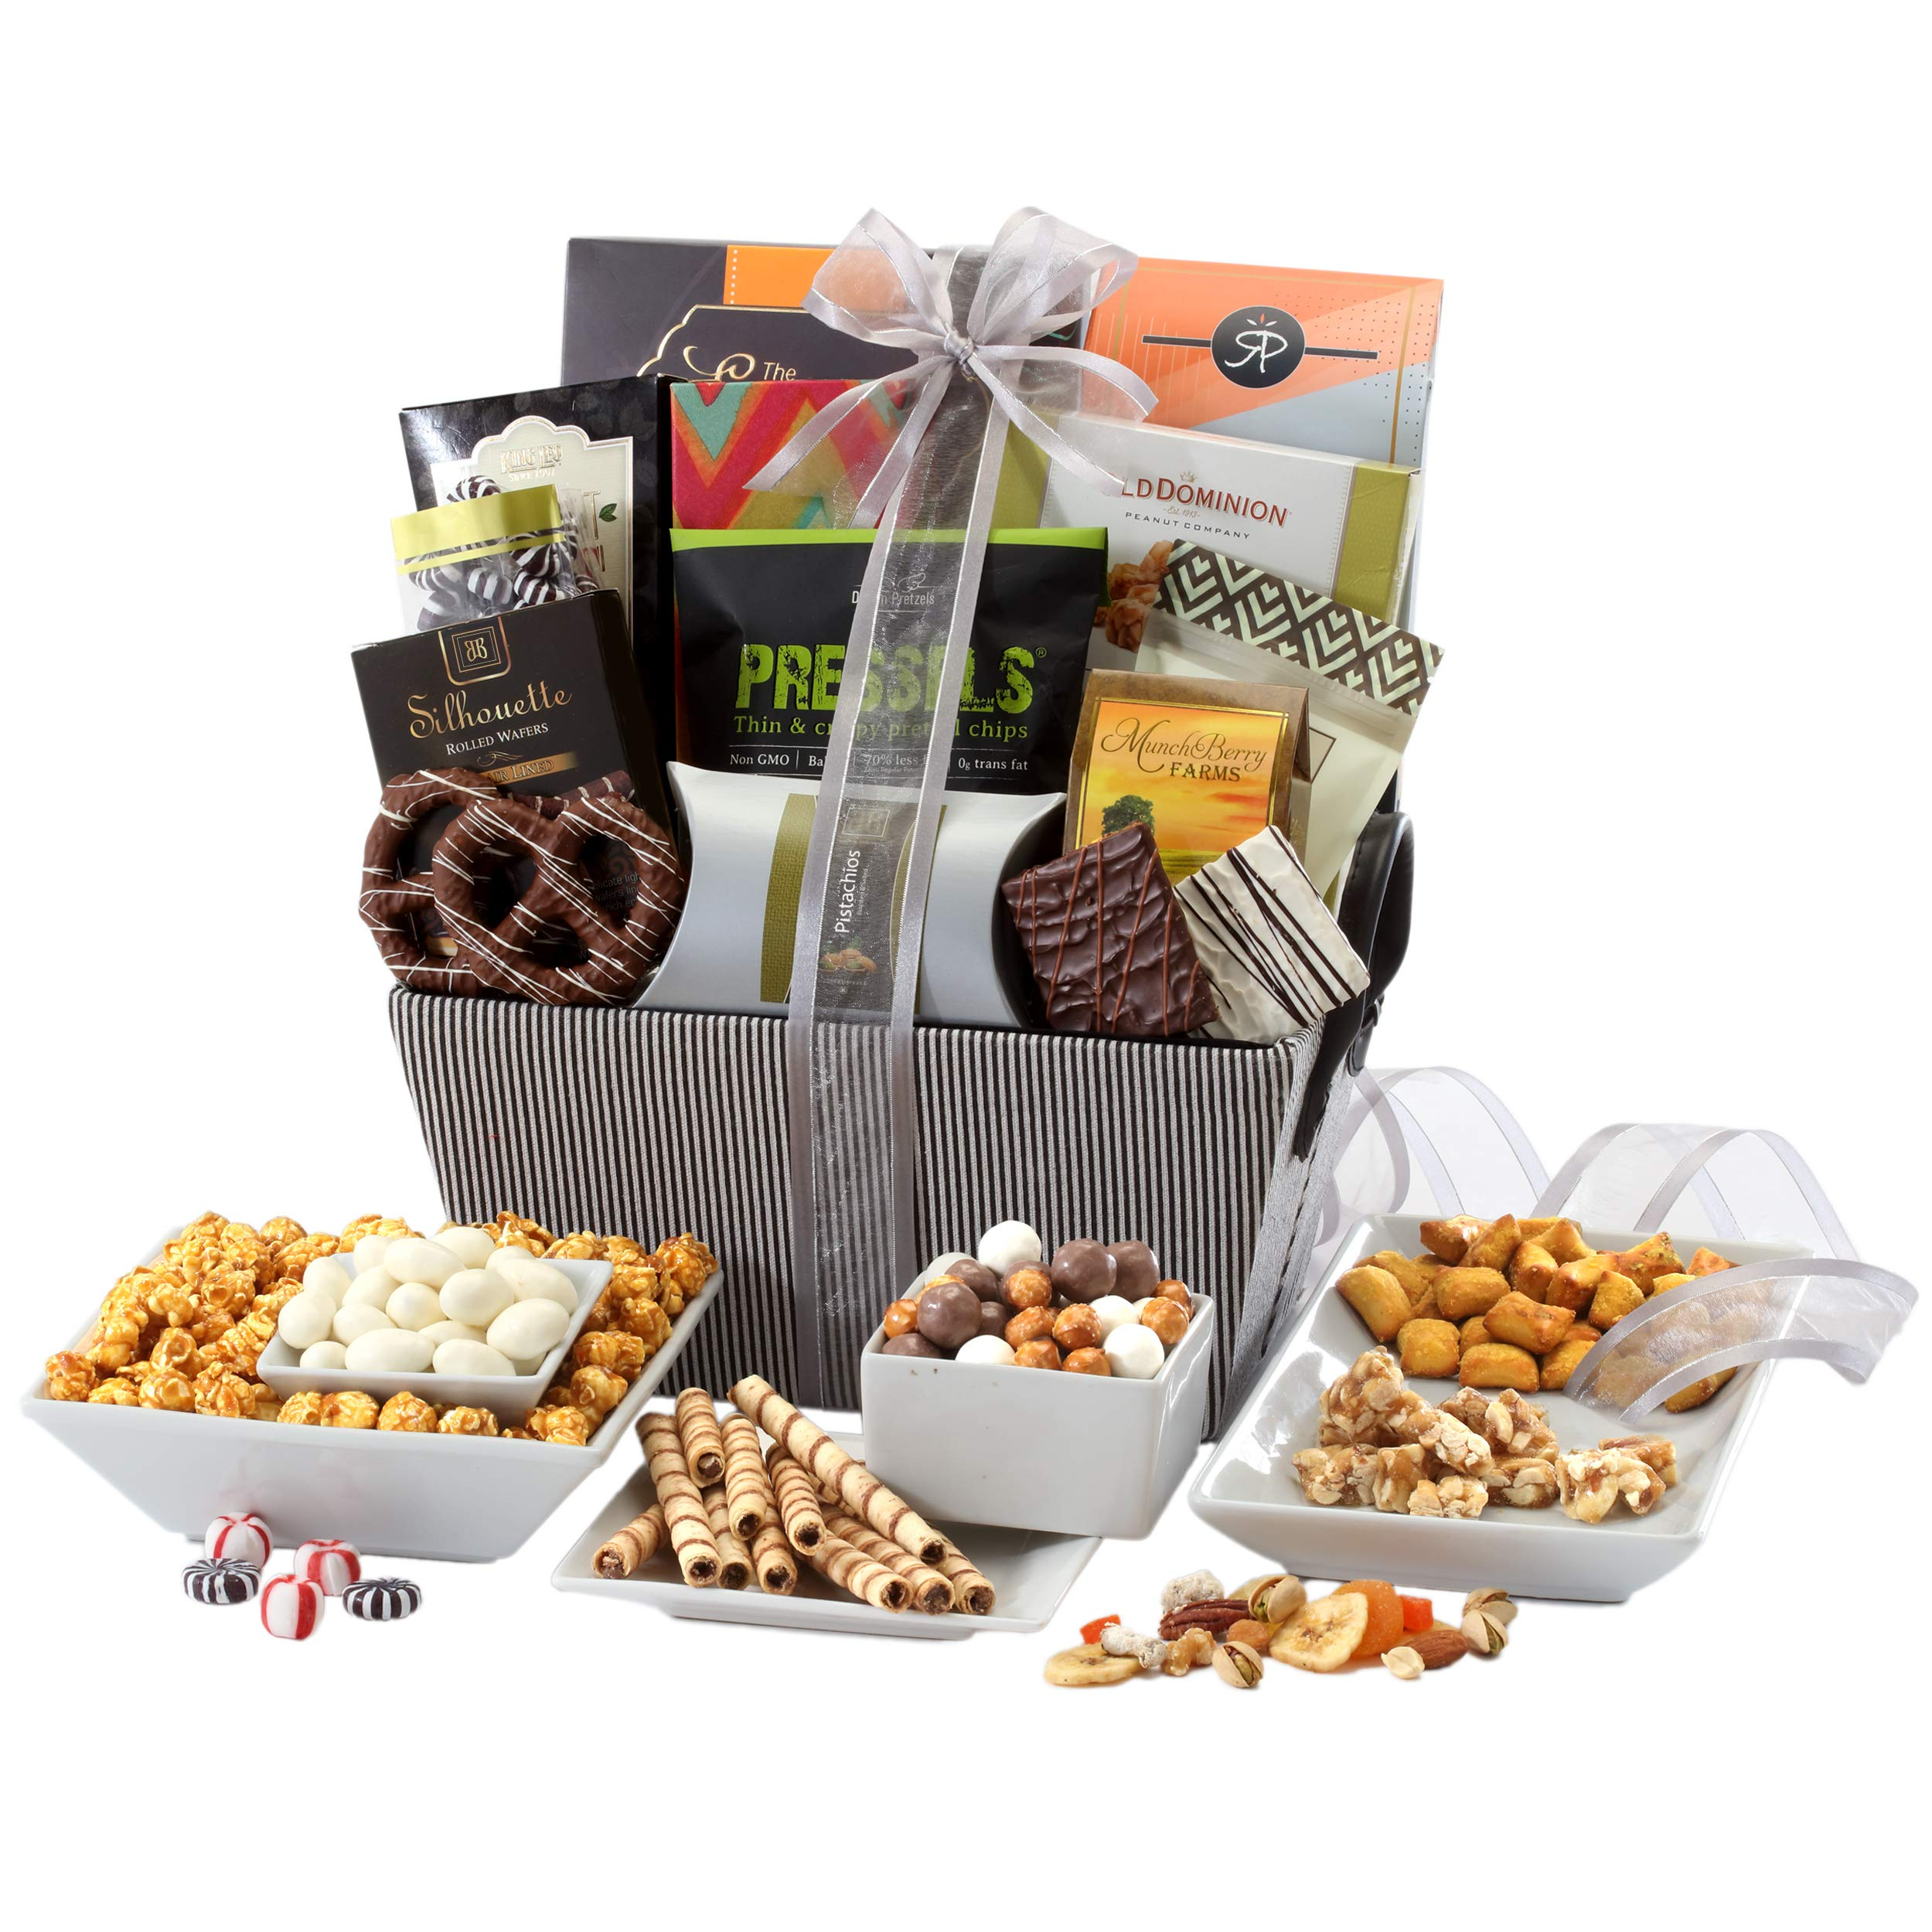 Sweet and Savory Gift Basket with Chocolates, Seasoned Nuts, Brittle, Pastries, Assorted Sweets & Snacks by Broadway Basketeers (Image #2)